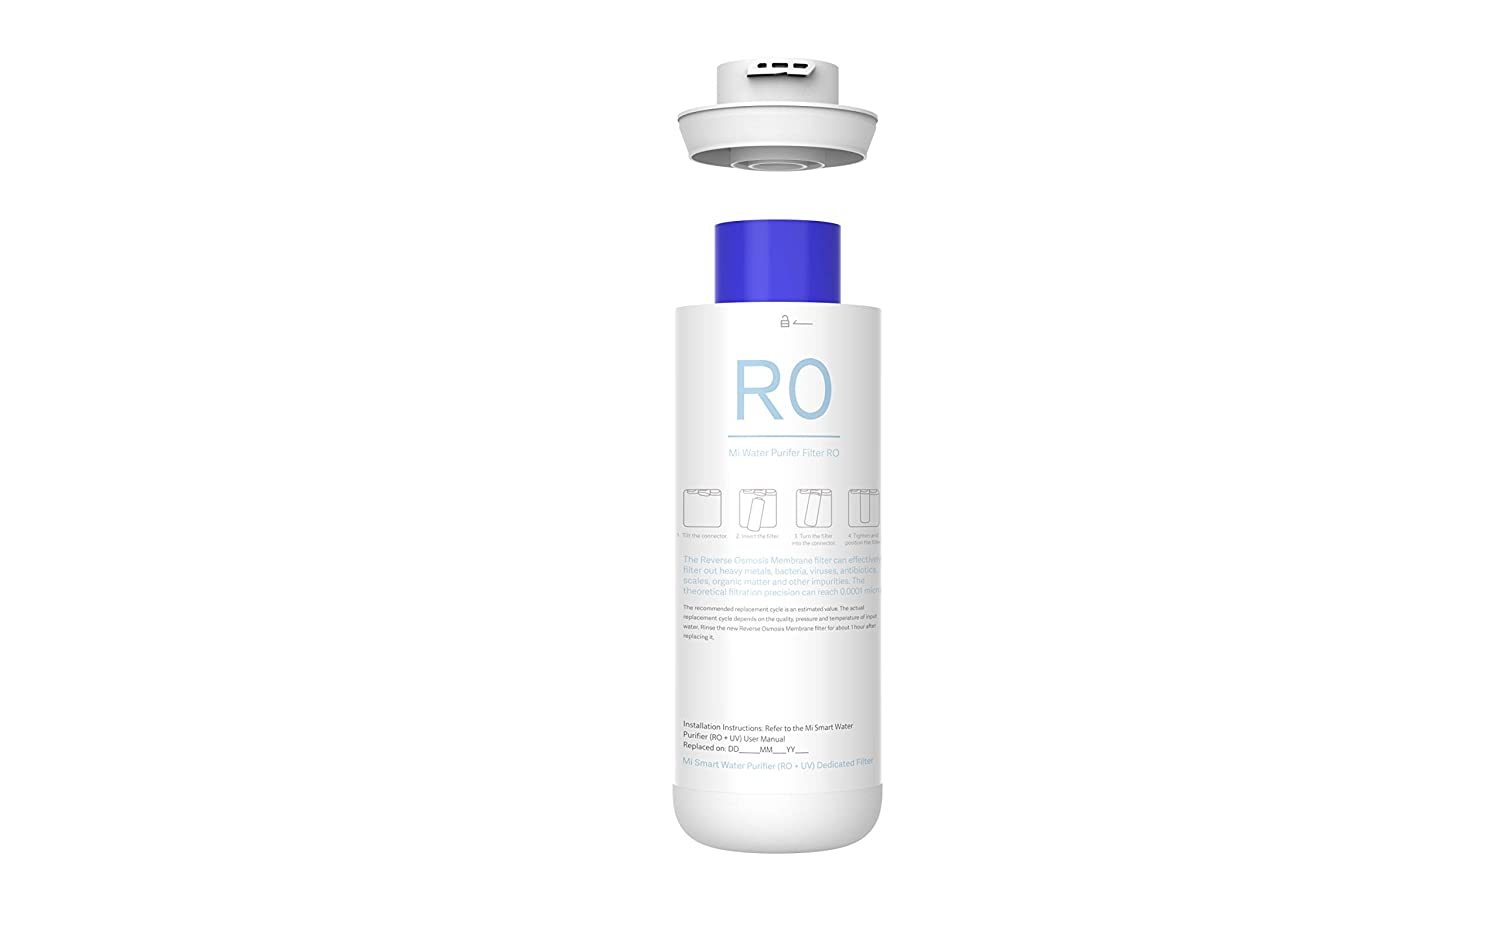 MI Water Purifier Filter RO